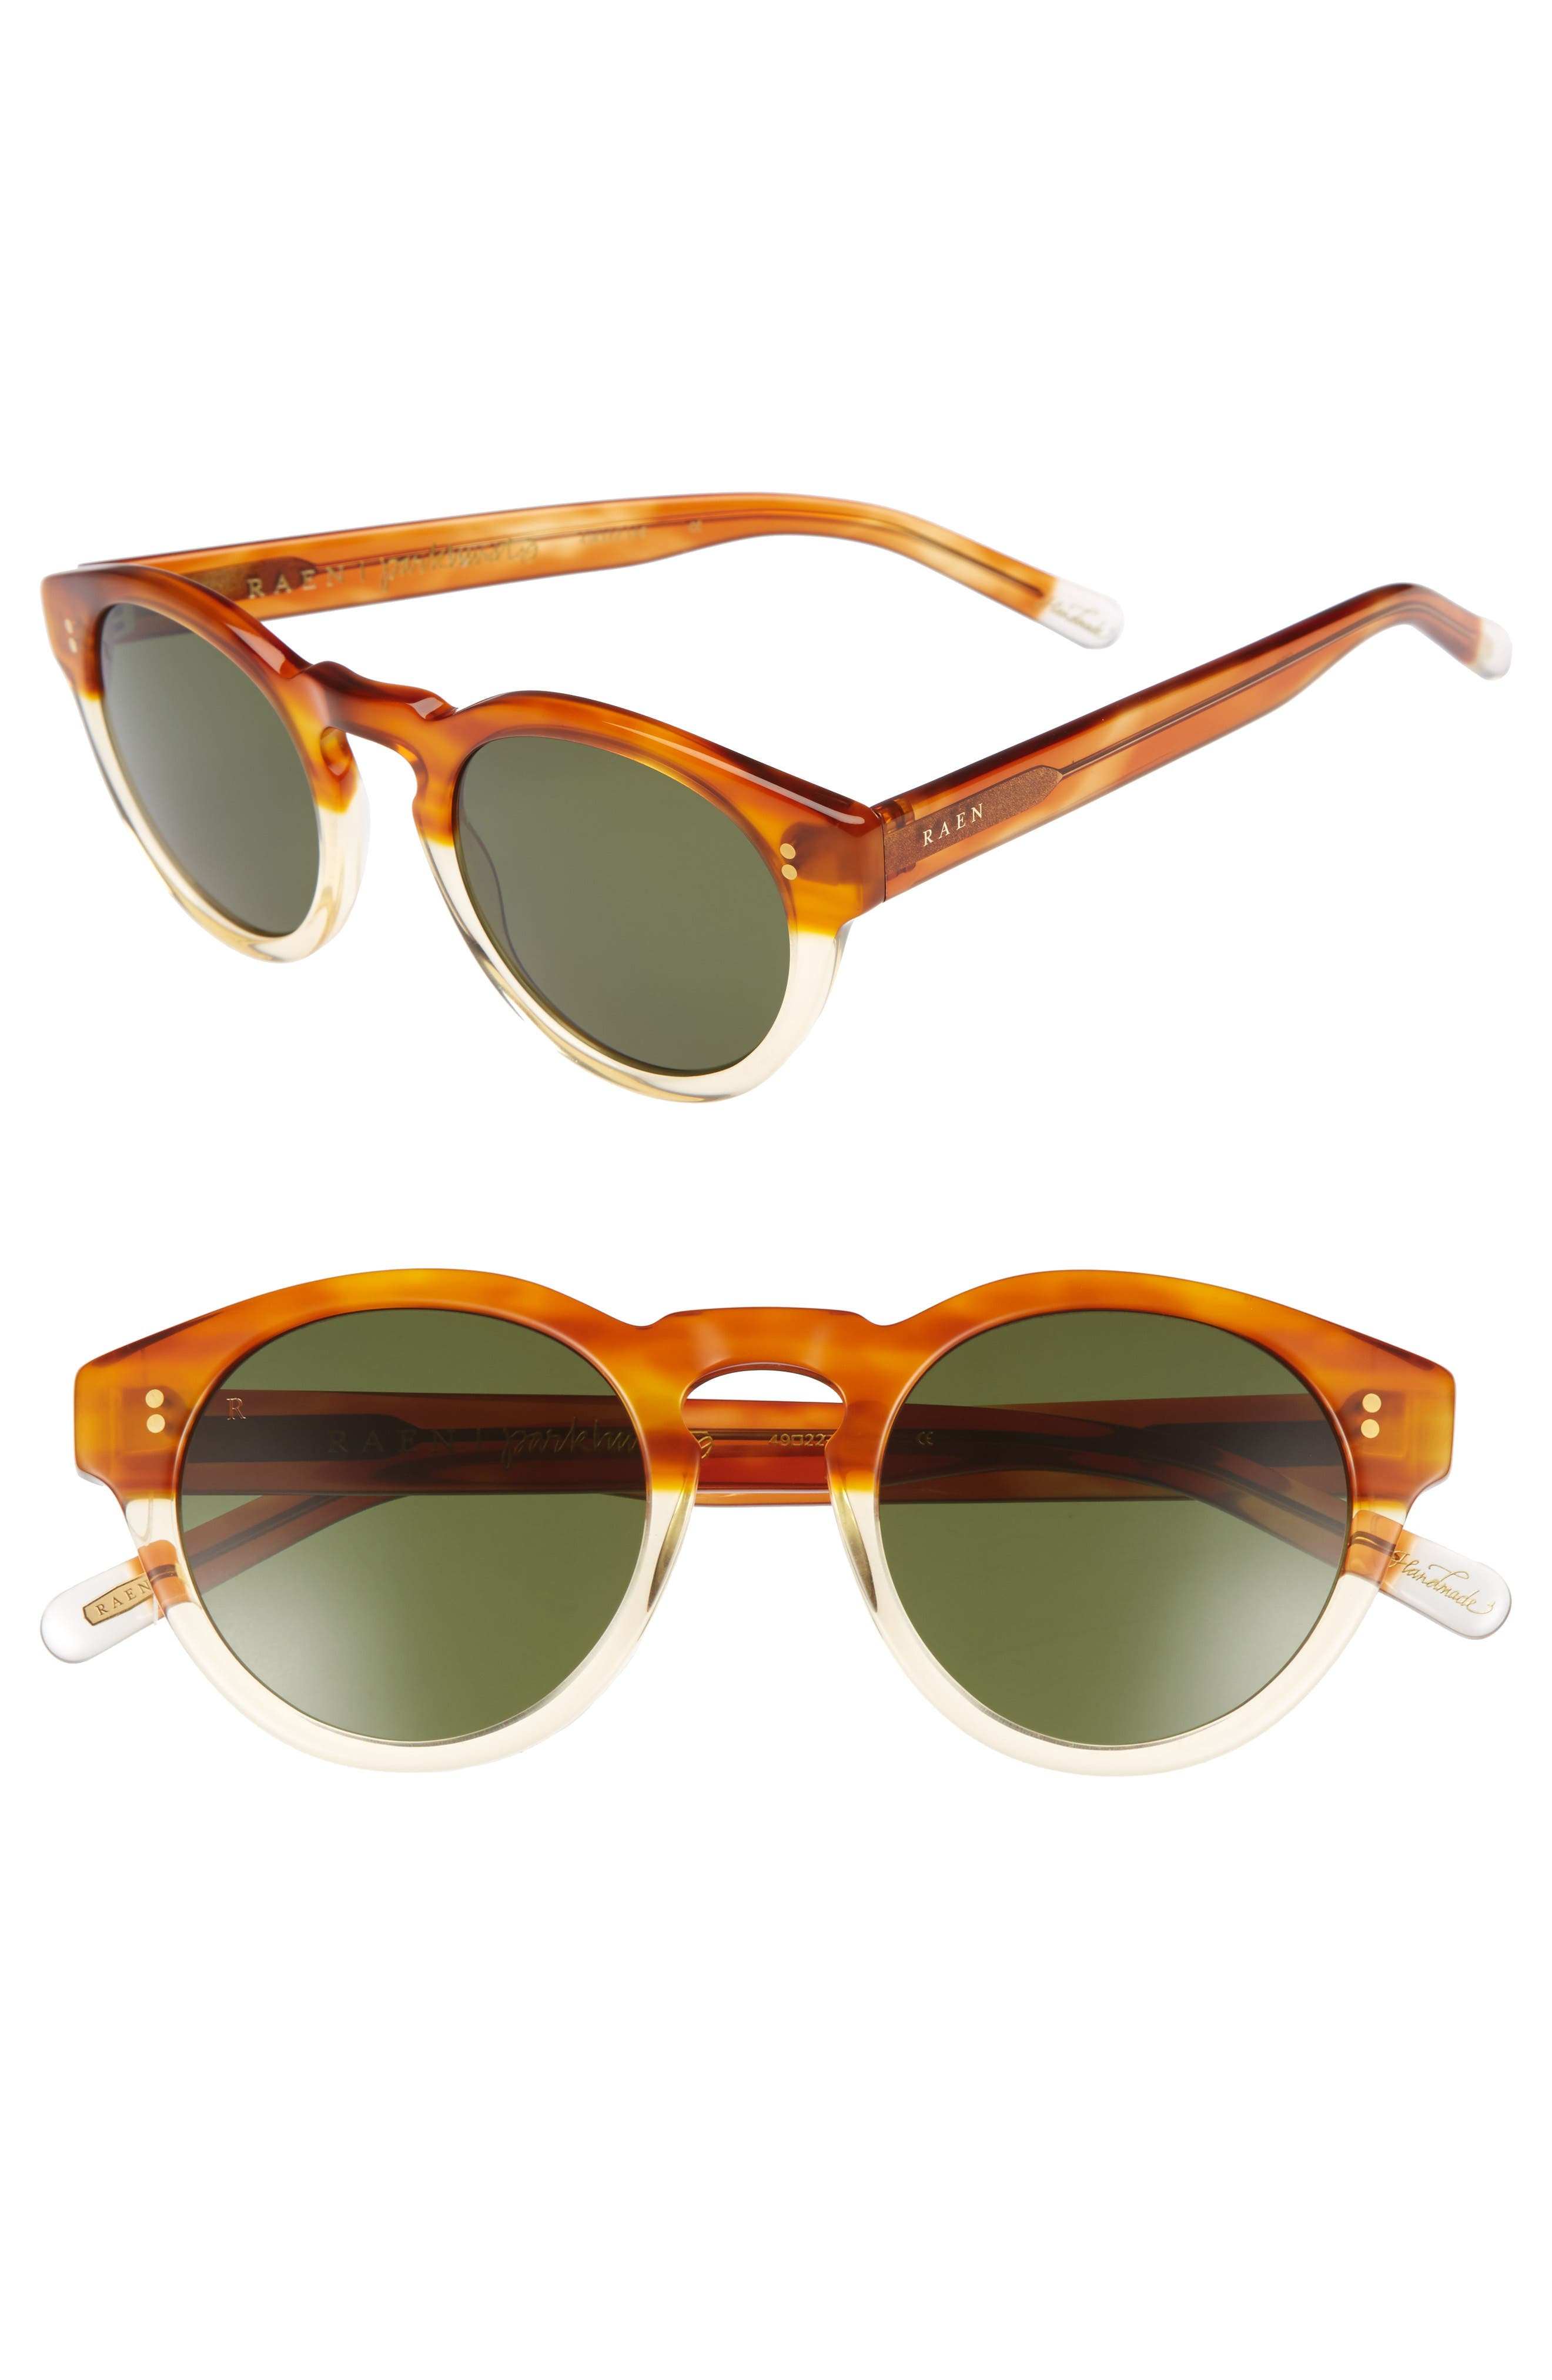 Parkhurst 49mm Sunglasses,                         Main,                         color, Honey Havana/ Green